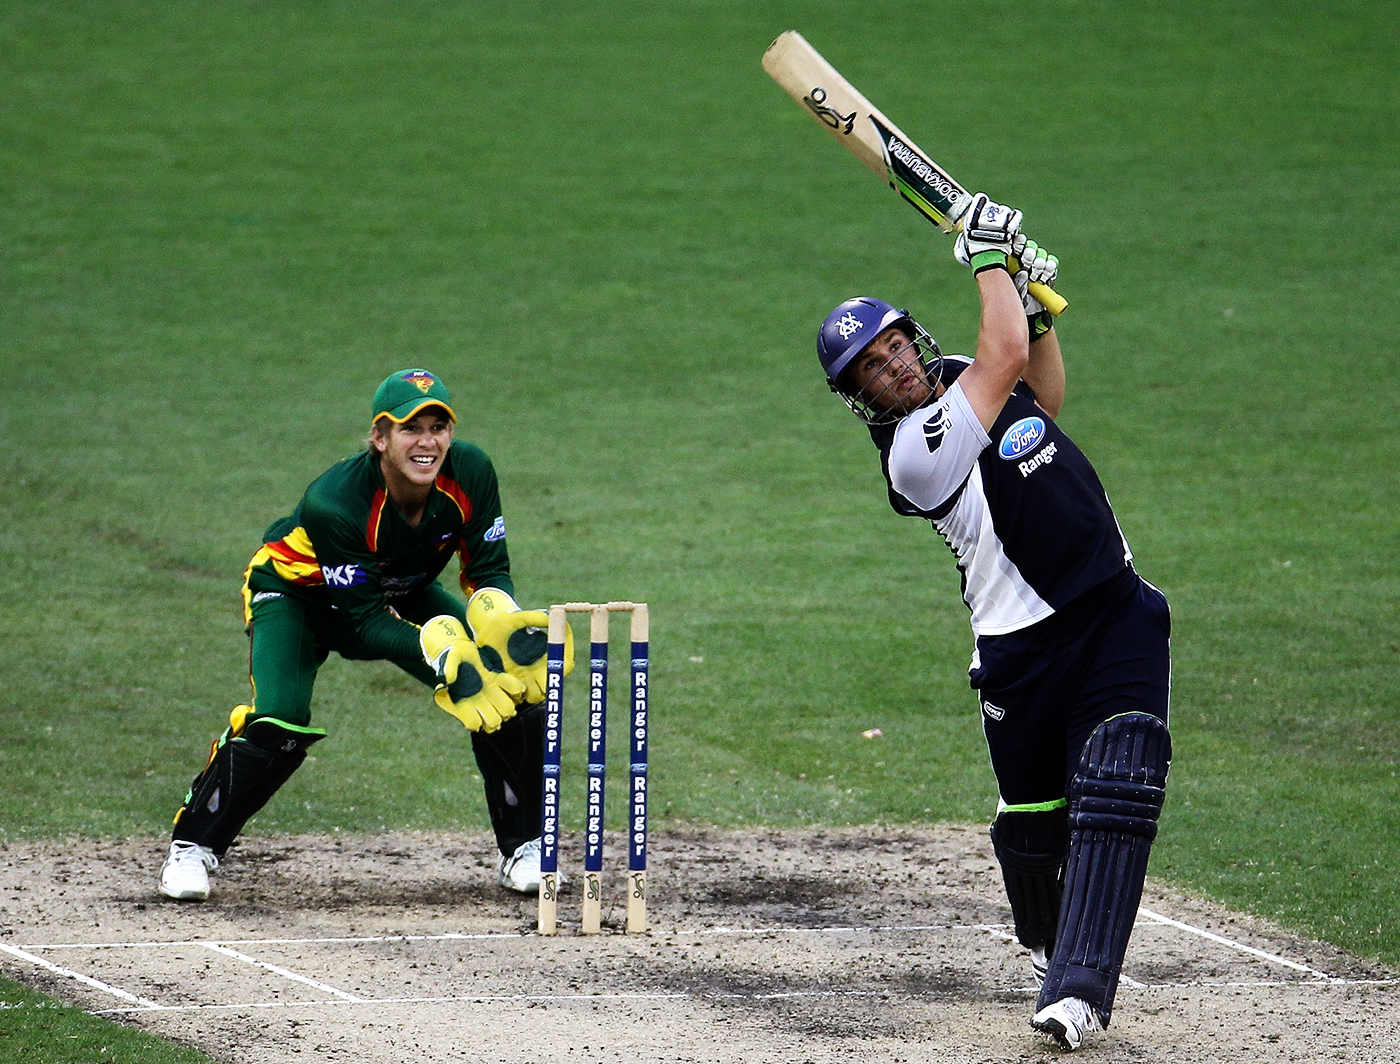 Aaron goes boom: Finch is seventh on the list of most prolific six-hitters in List A, T20 and first-class cricket combined, with 673